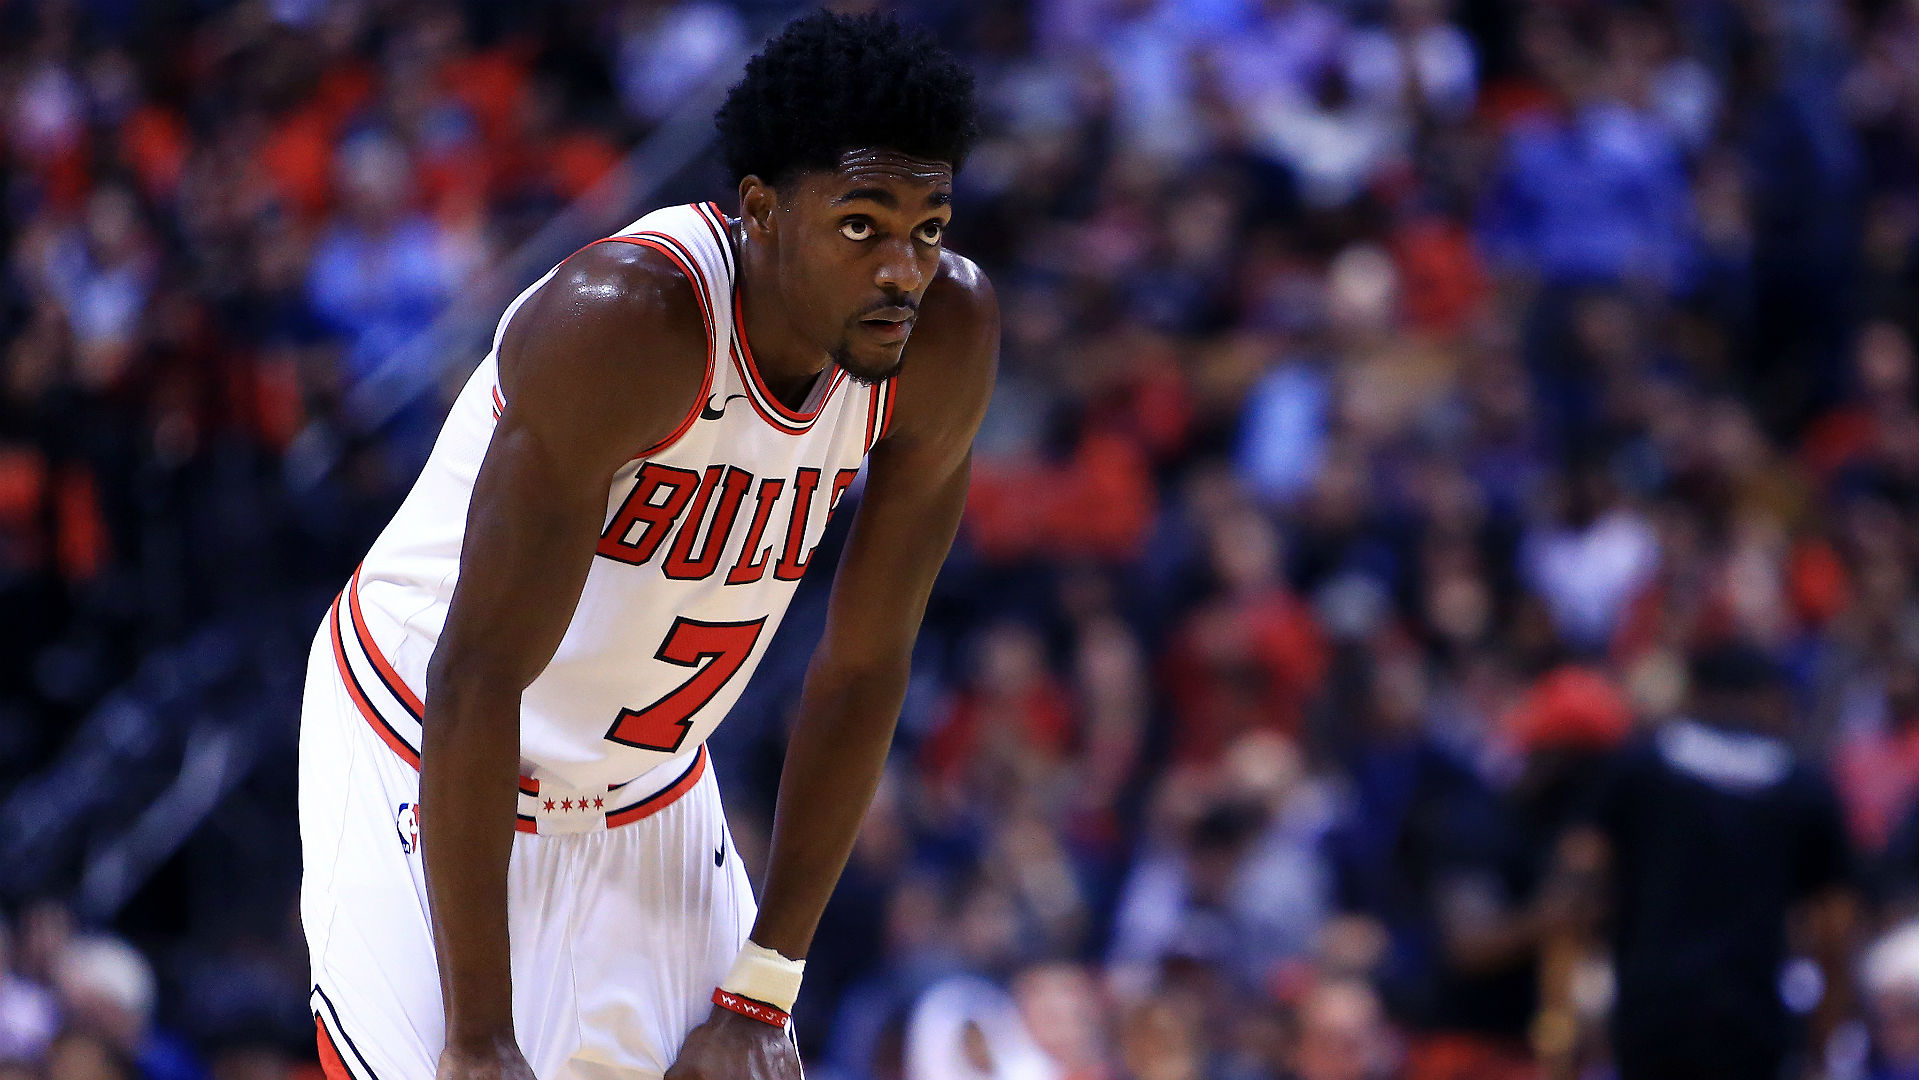 Bulls trade Justin Holiday to Grizzlies, report says